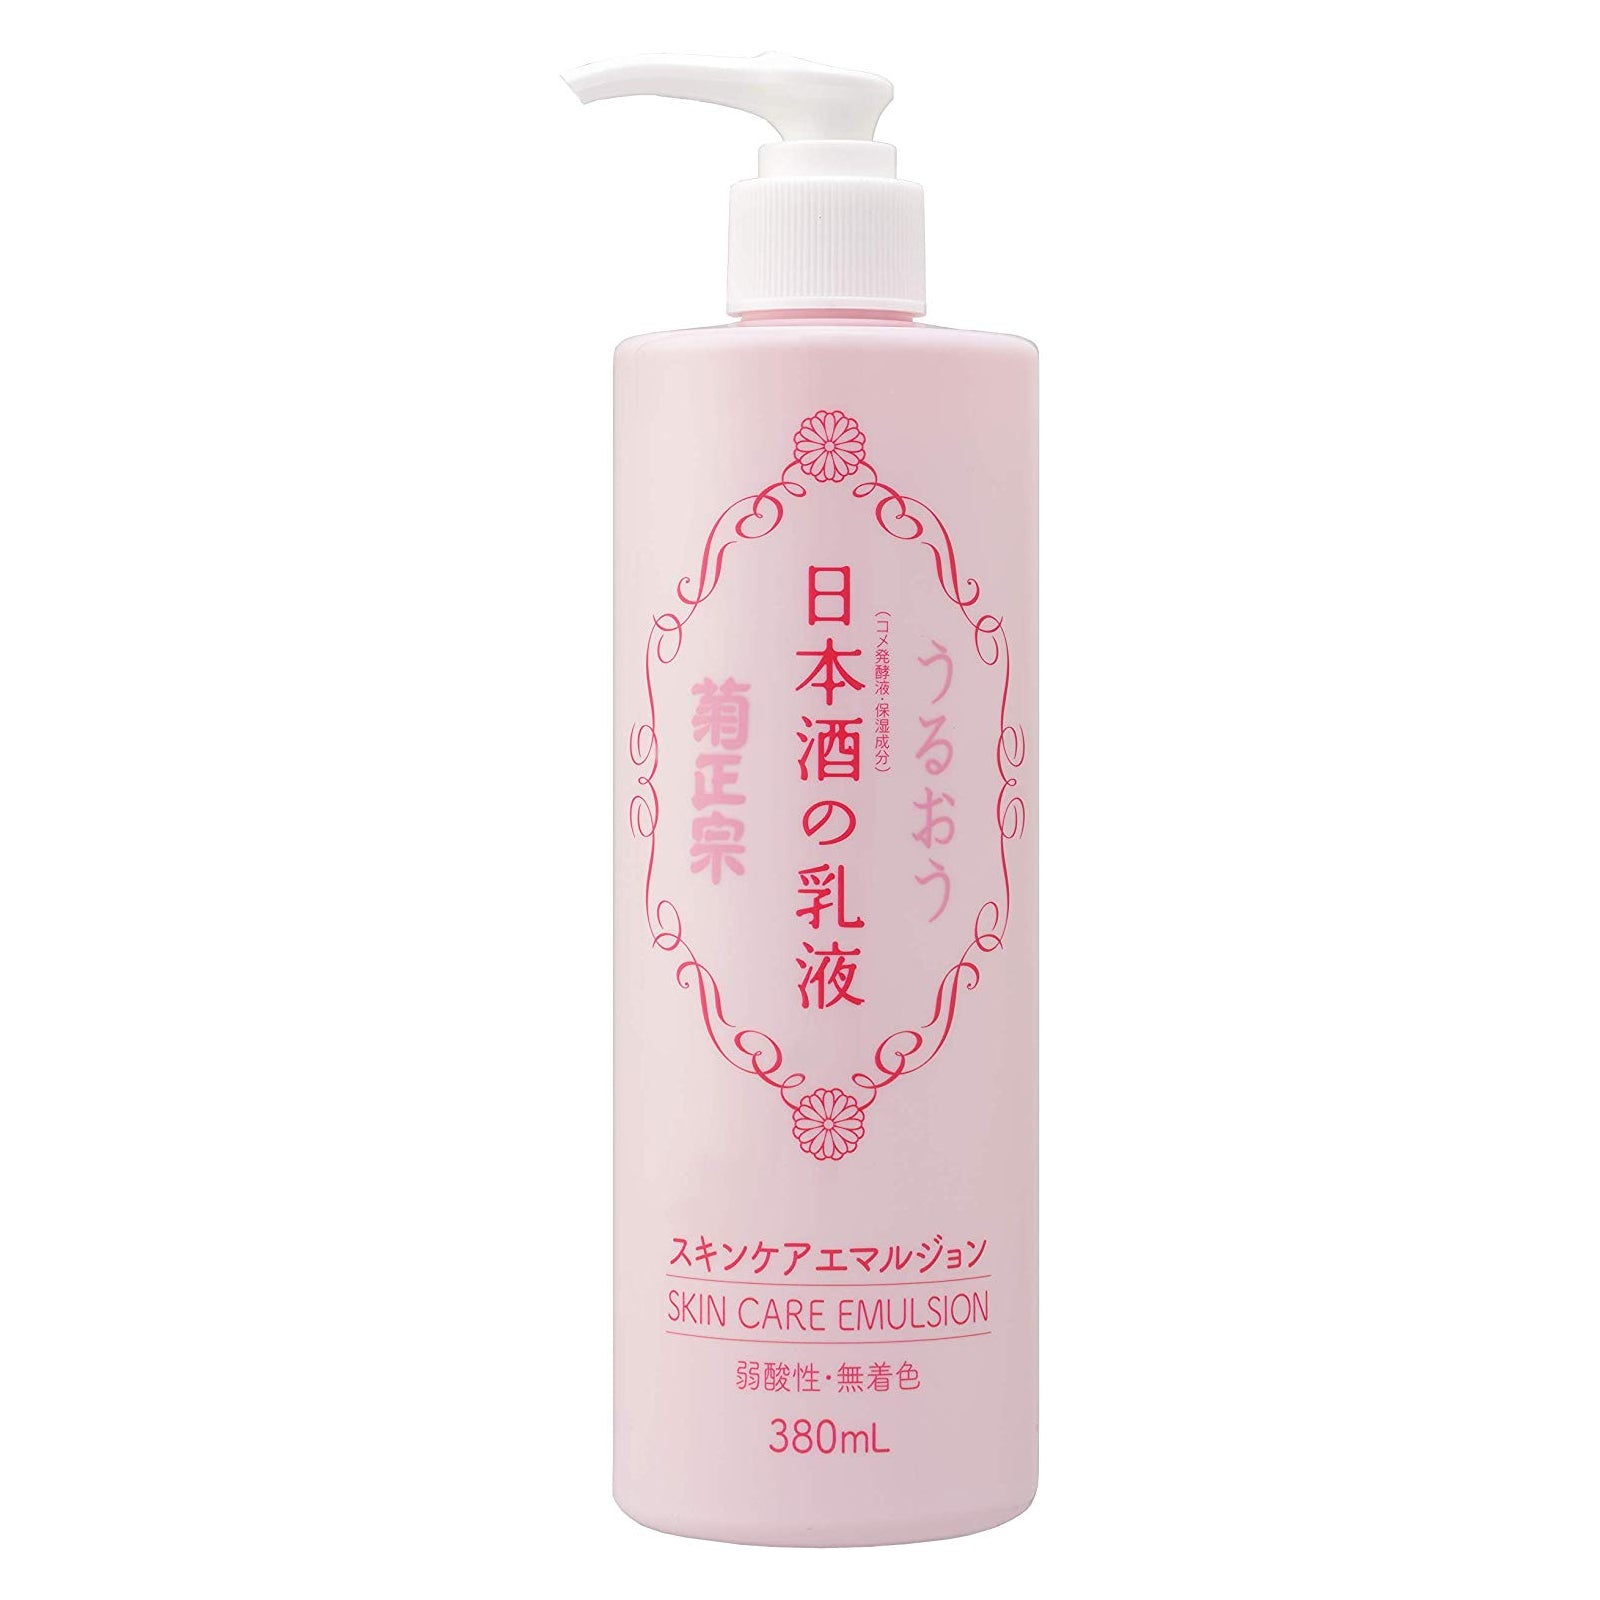 Kiku-Masamune Sake Brewing Skin Care Emulsion